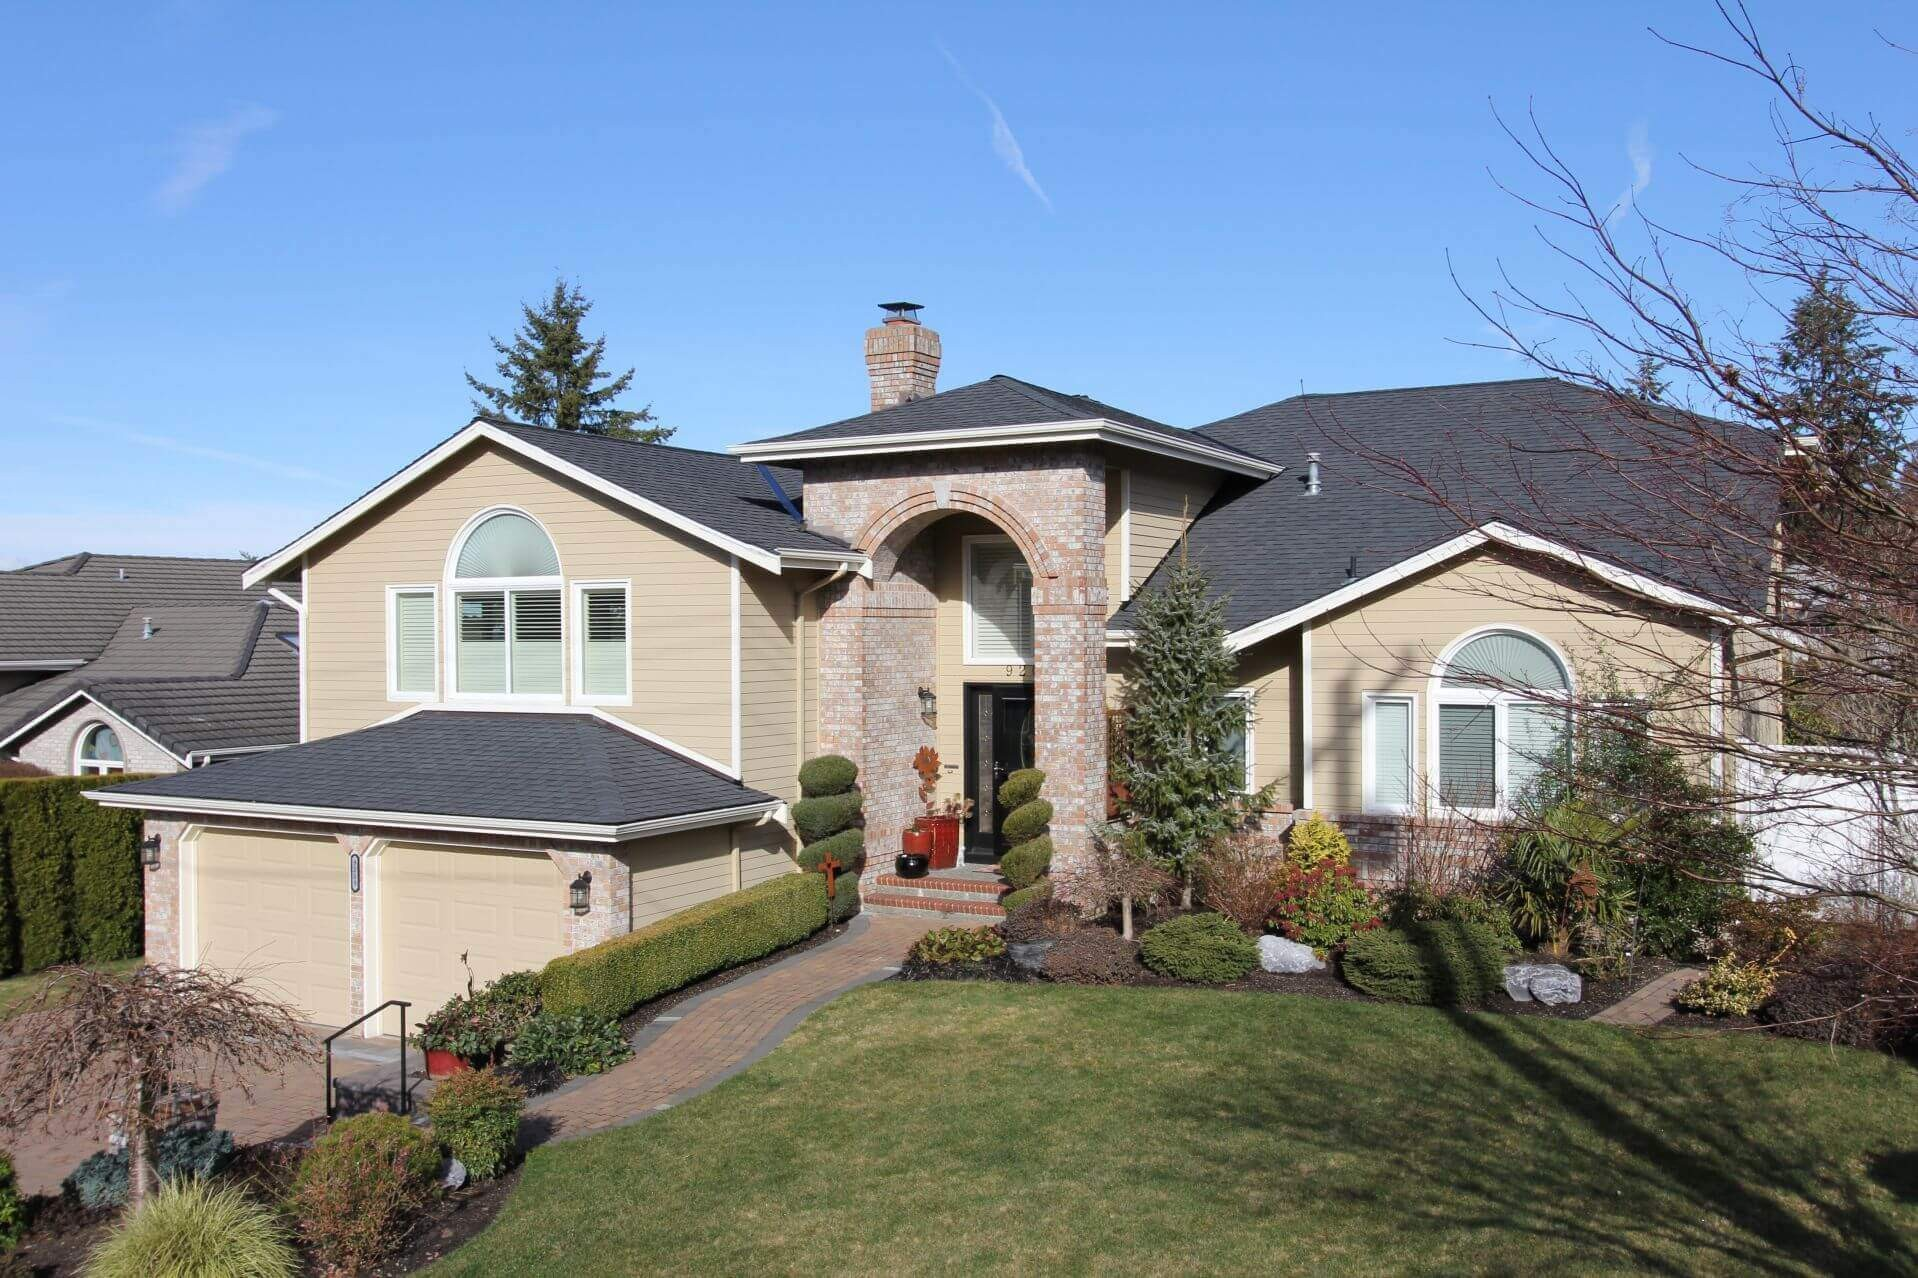 Edmonds Roofers. Repair Water Leaks & Shingles & Flashing. 45 Years Roofing Company Experience. Local Licensed Contractor Near Me - Emergency & New Roof Replacements. Experts For Lynnwood & Shoreline, WA